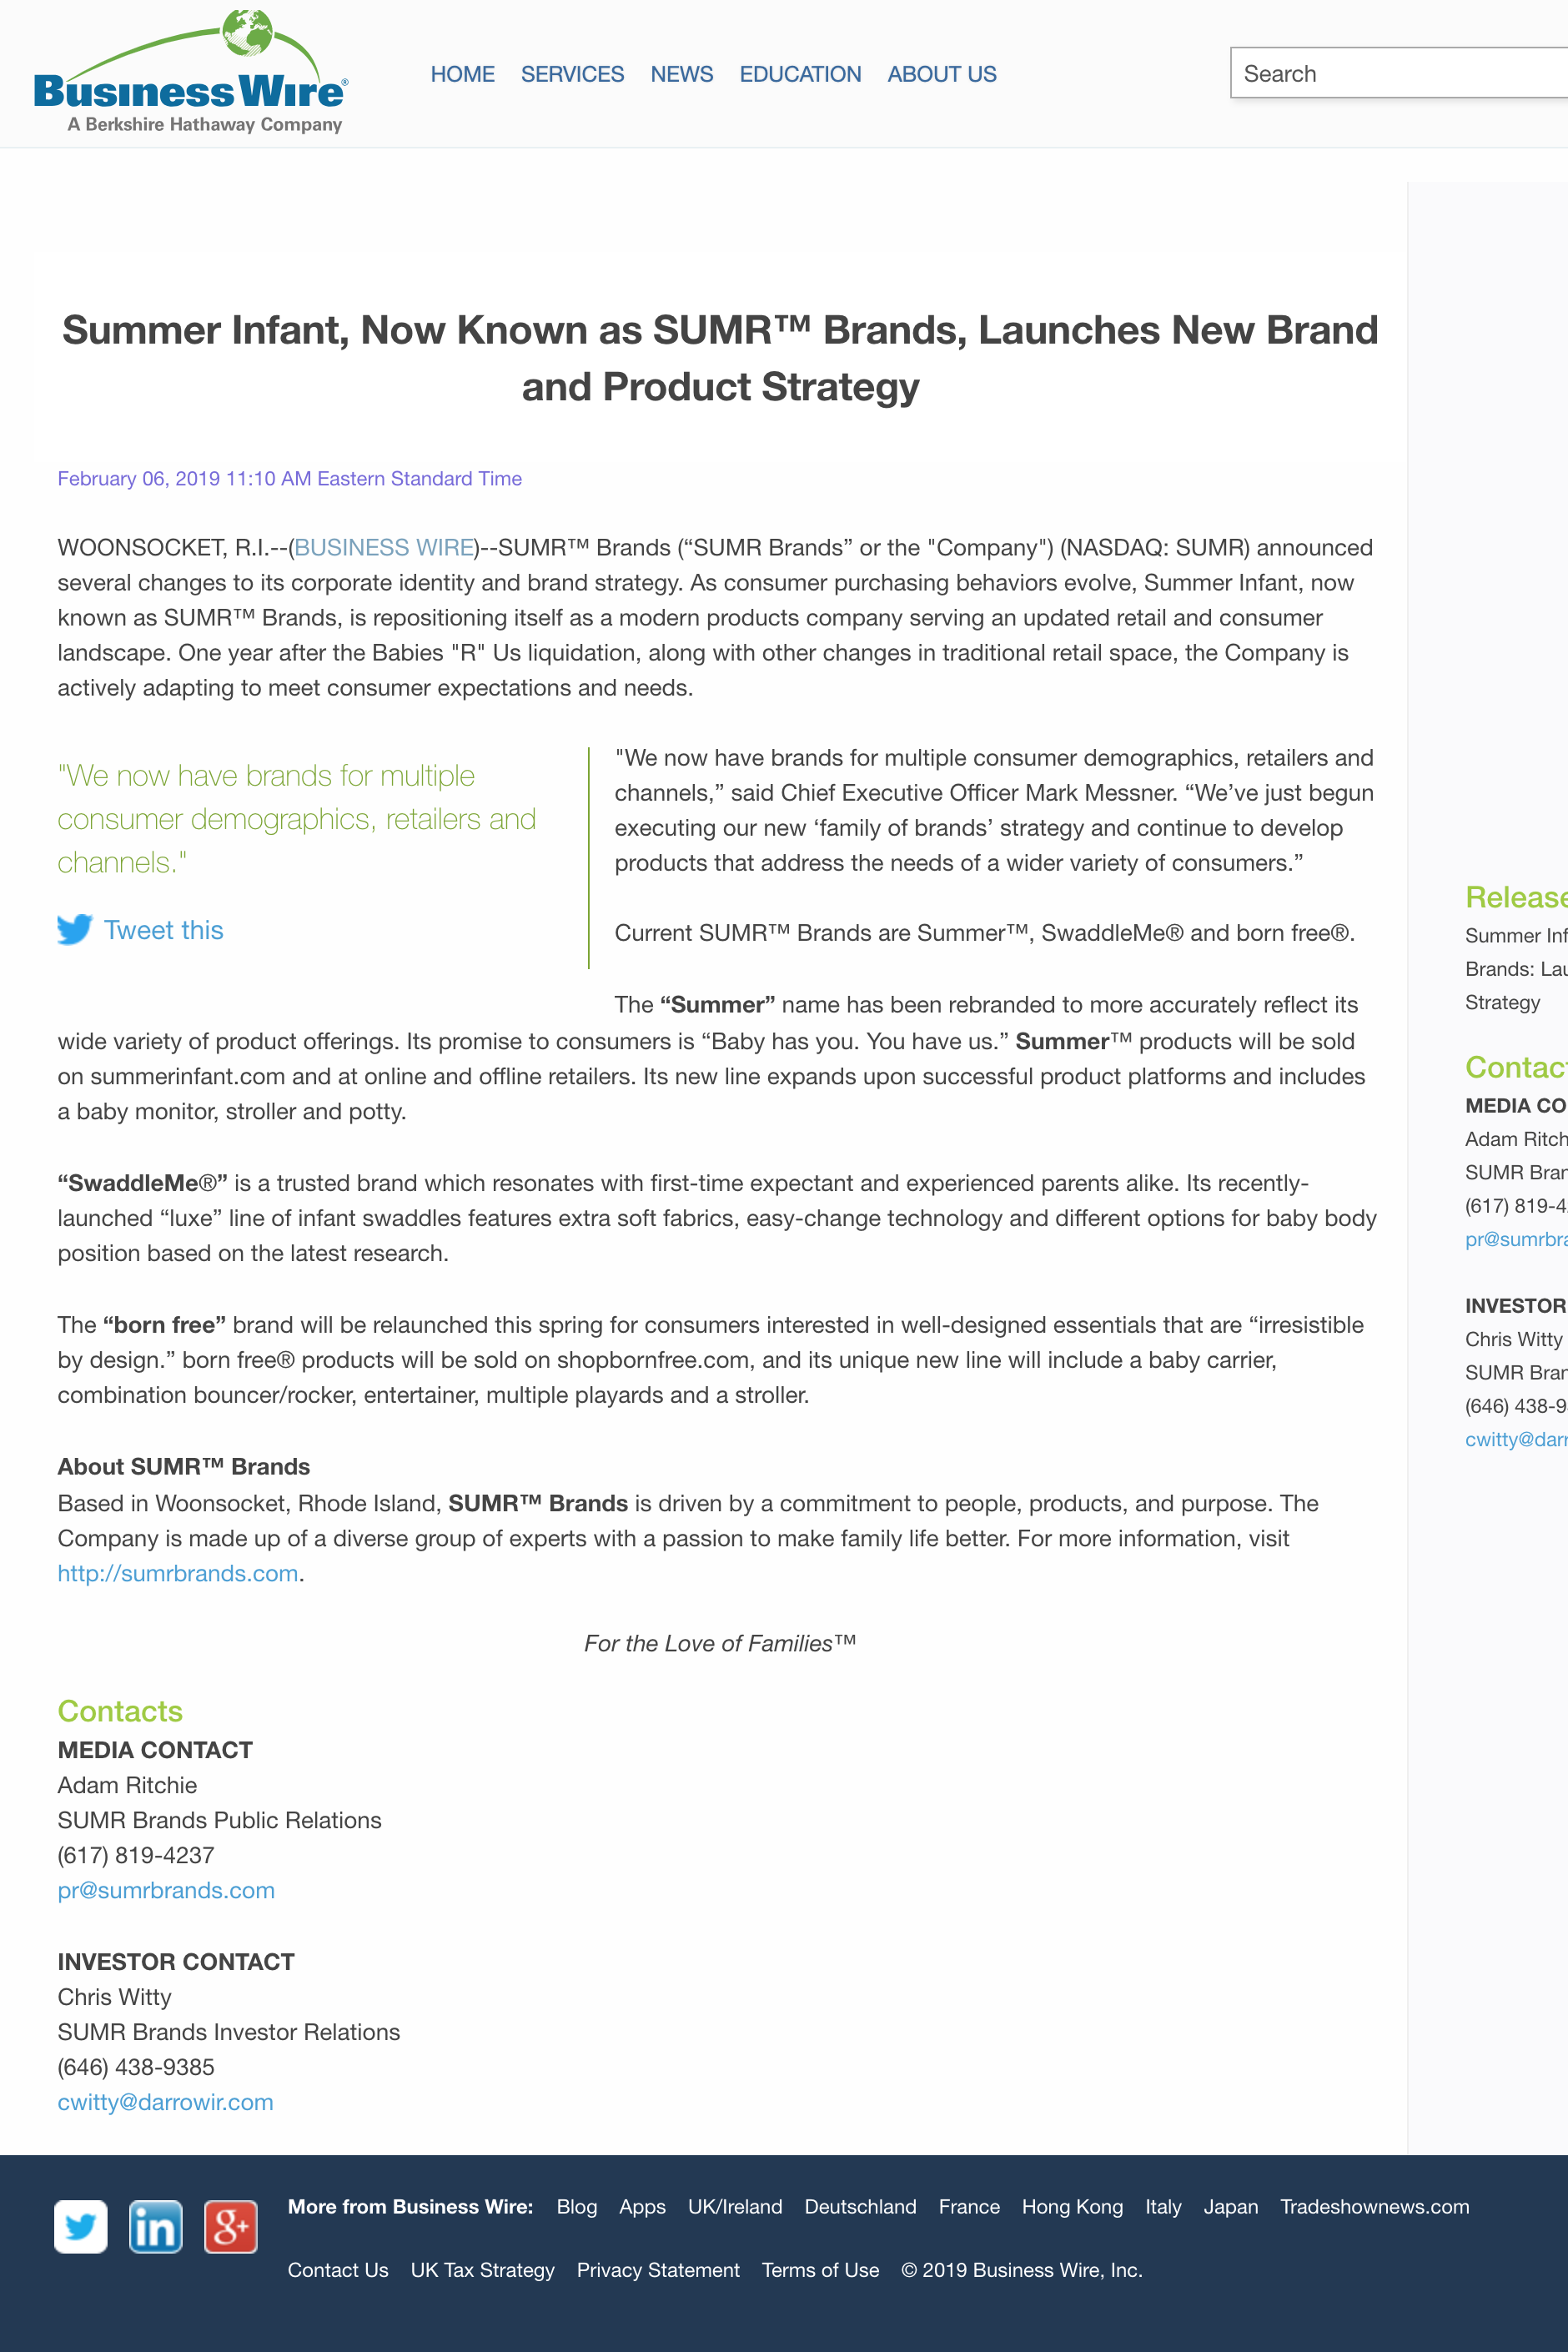 2019.02.06_Business Wire_SUMR Brands Corporate_cropped 2x3.png